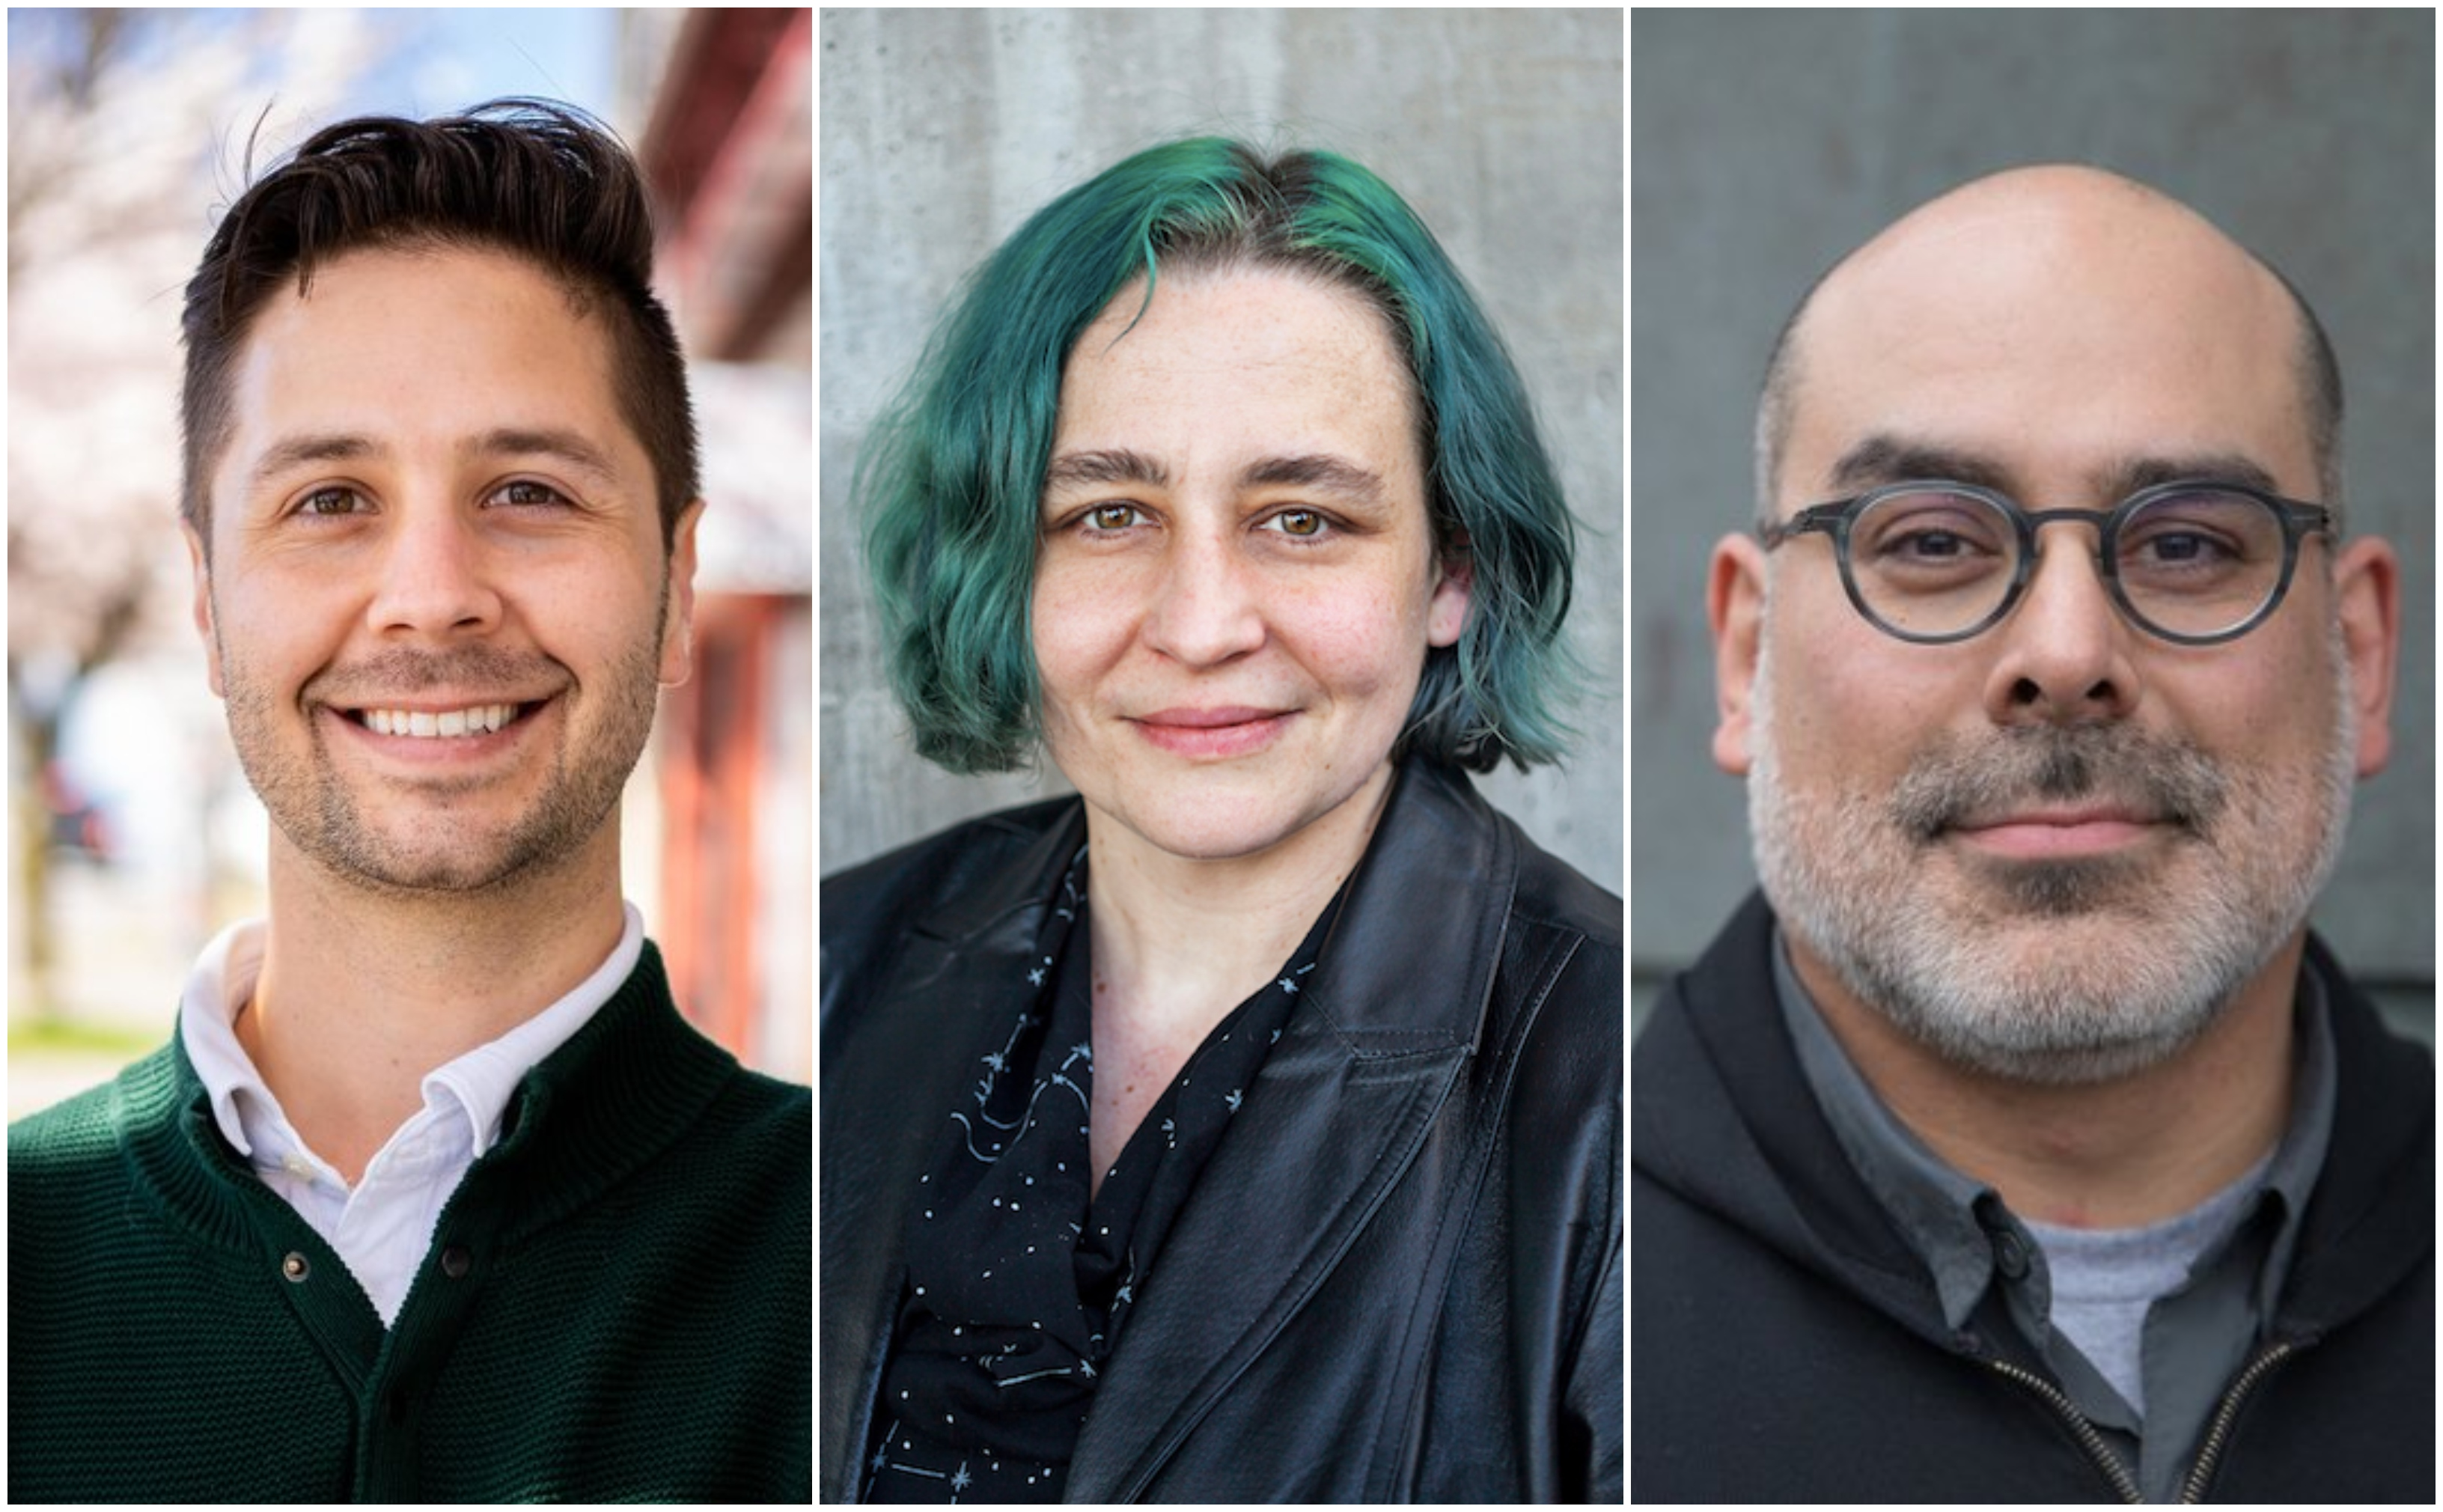 Former Seattle City Council candidates Zachary DeWolf, Melissa Hall, and Christopher Peguero